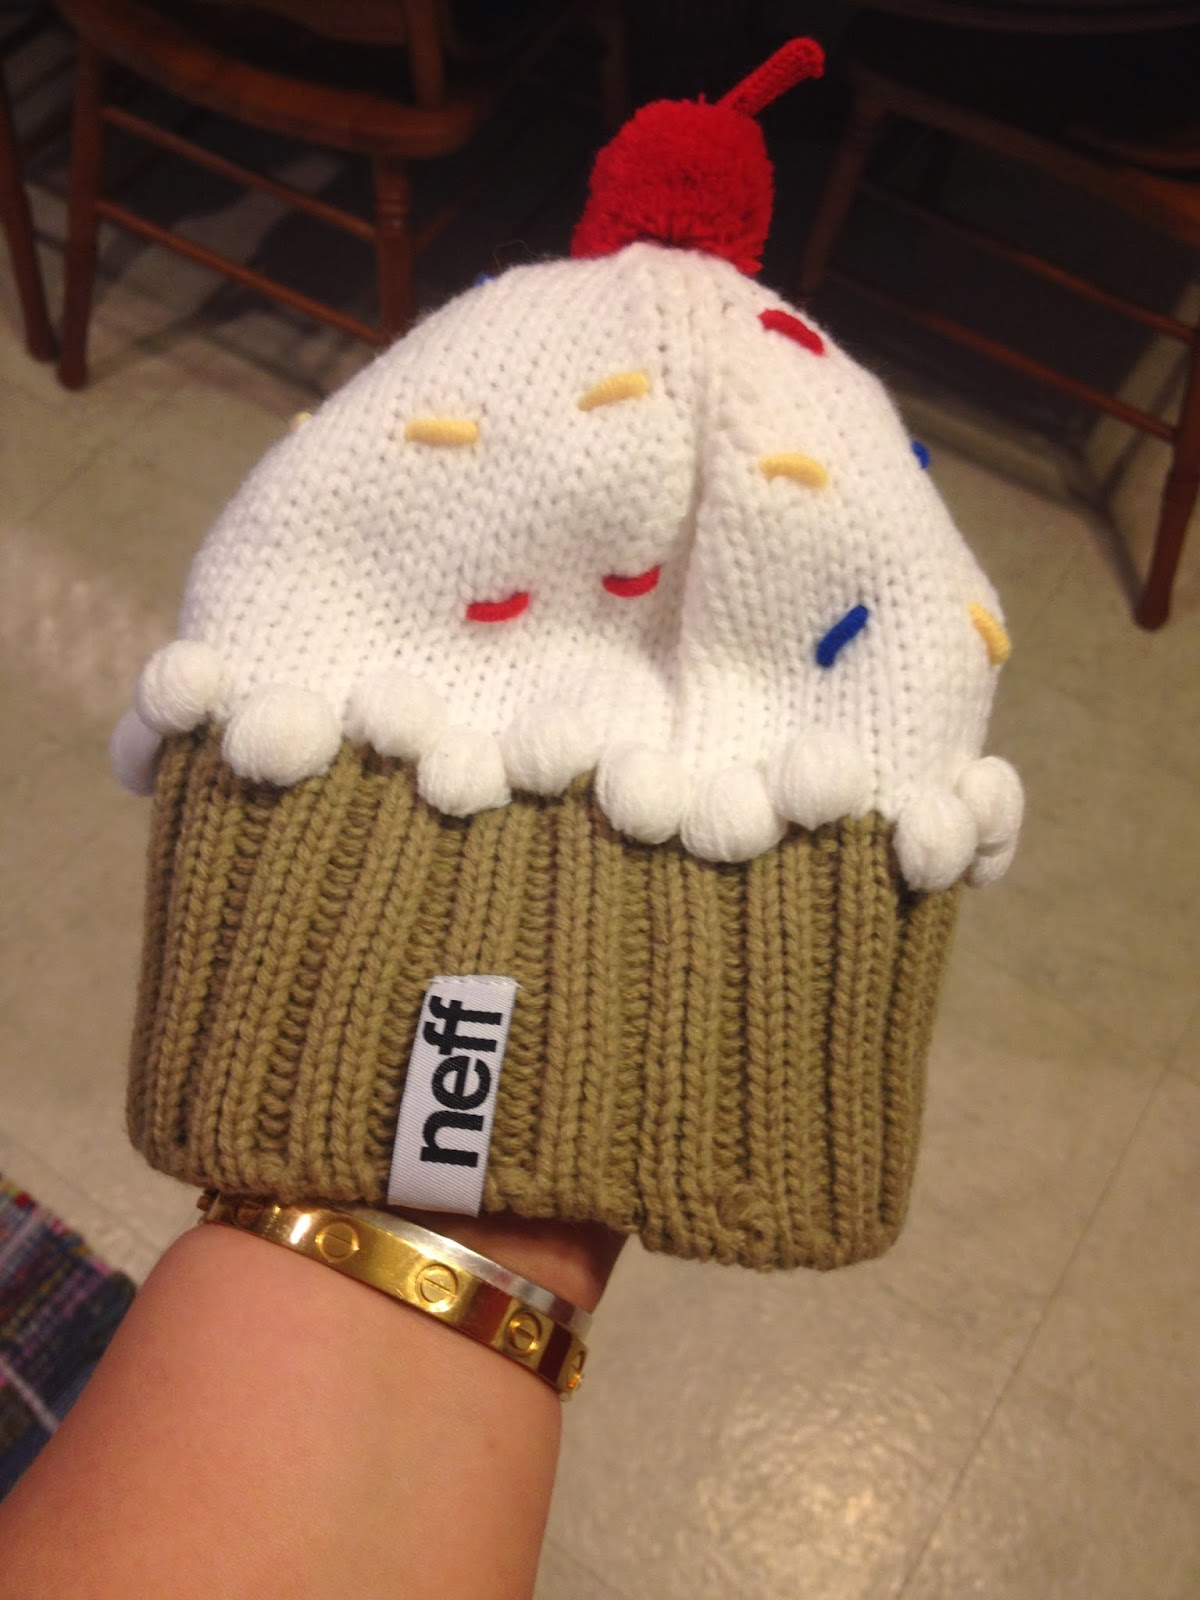 626e9a63eedc2 Today I thought I would share with you guys a pic of a new beanie that I  have recently been rockin. It s by Neff and it s the cupcake beanie